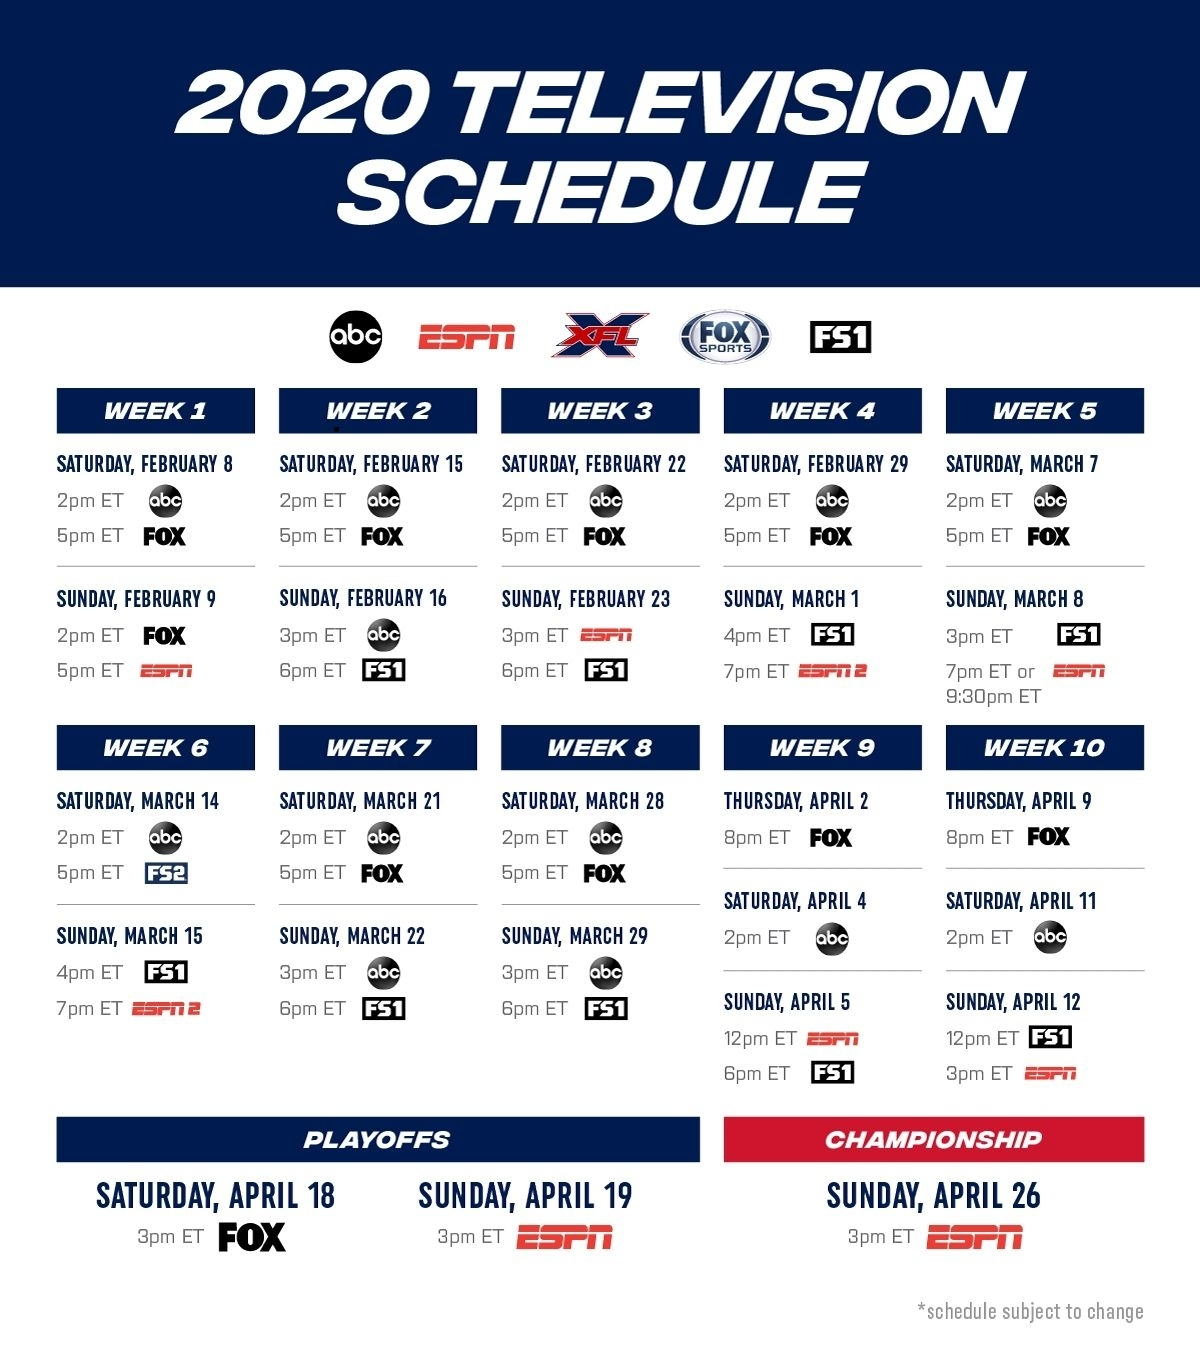 Printable Nfl Schedule For 2019 2020 In 2020 | Printable Nfl with Nfl Schedule 2019 2020 Excel